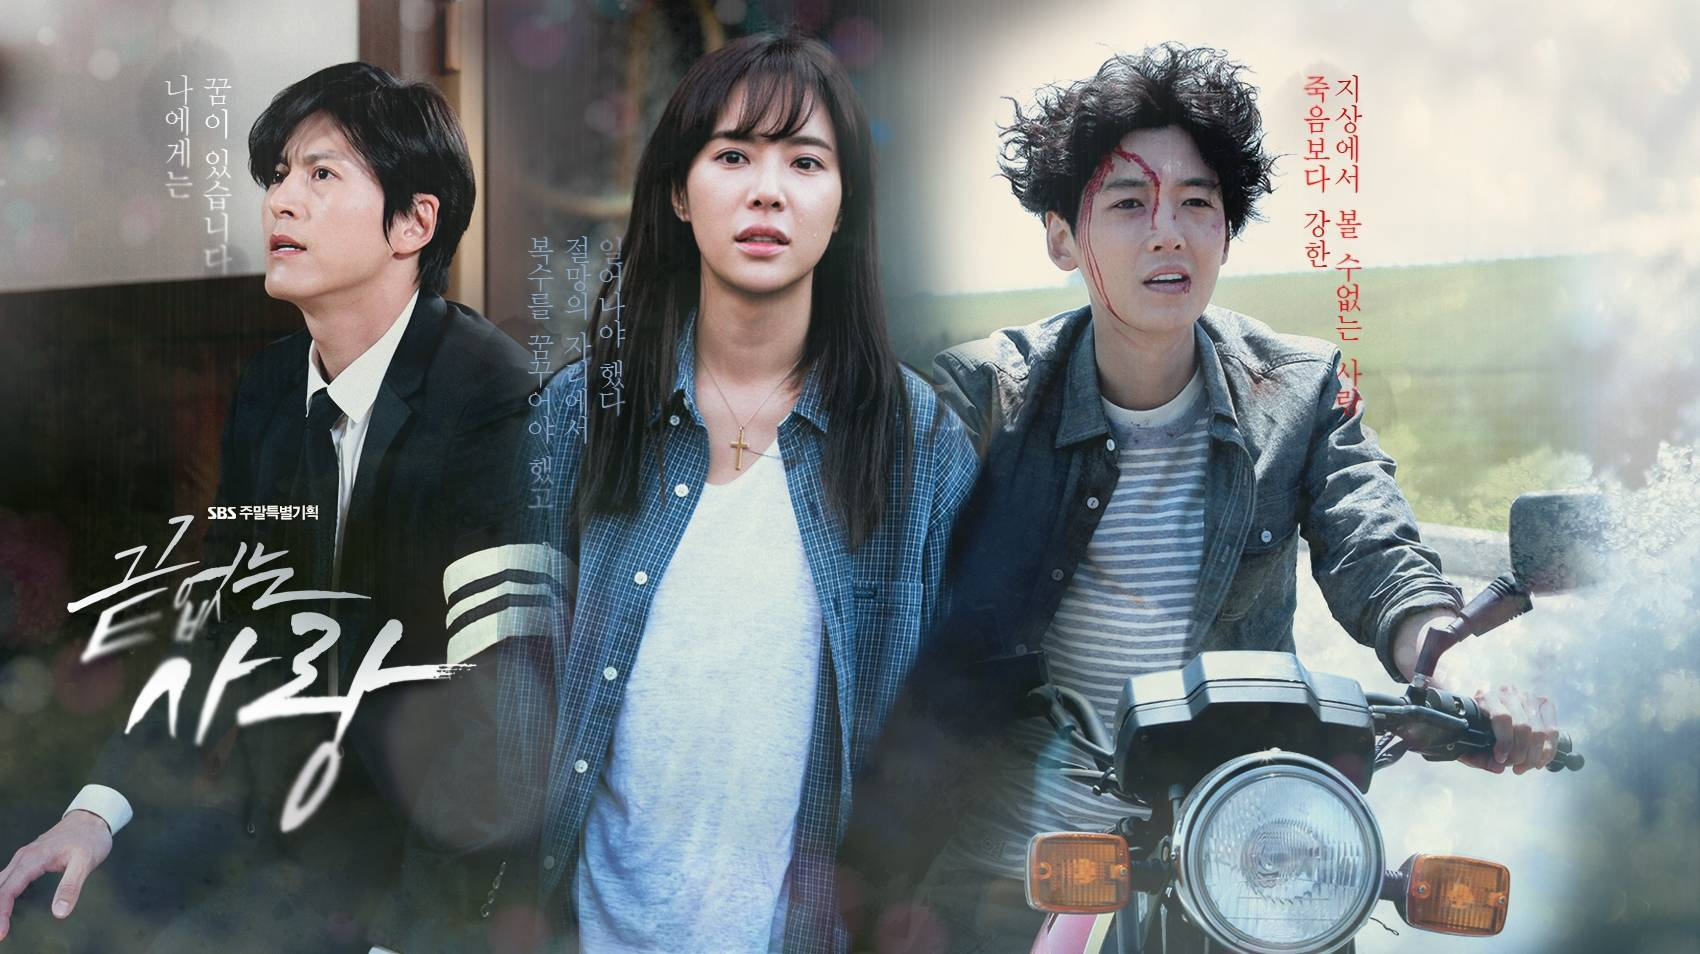 korean dramas Whether you are an established binge watcher or want to give korean dramas a  try, these six dramas should be on your radar this summer.